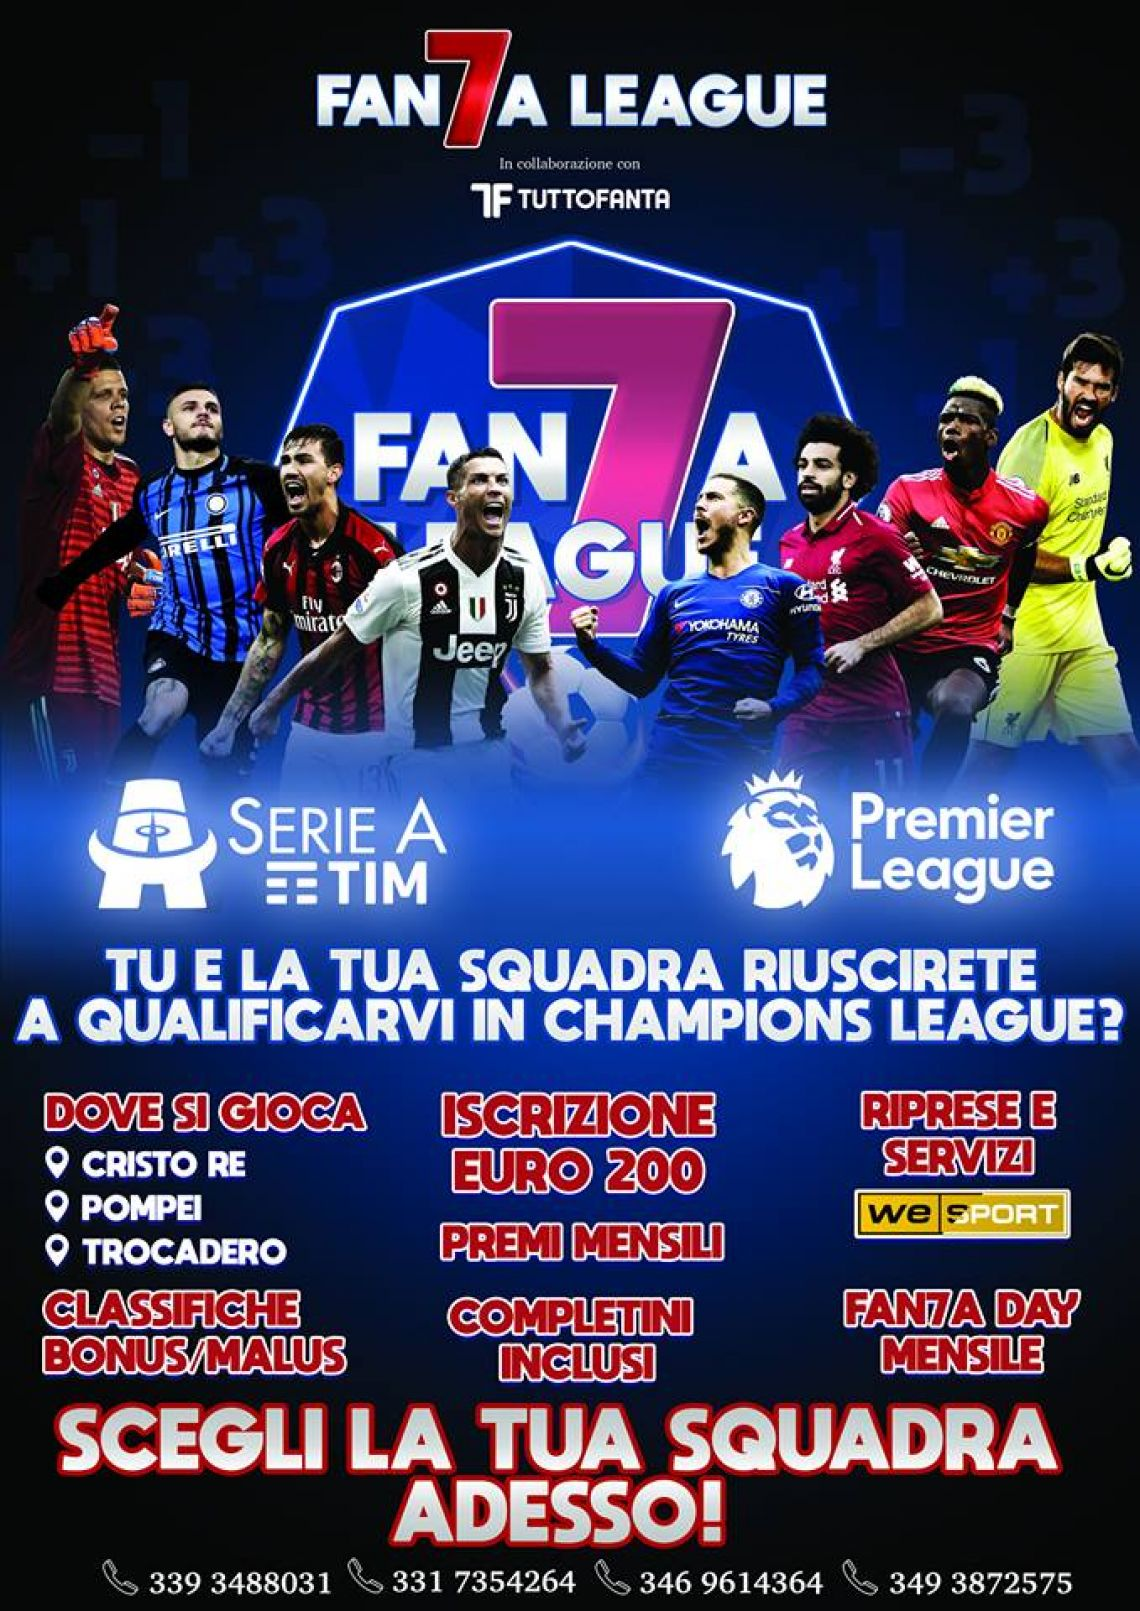 Premier League - Fan7a League 2019